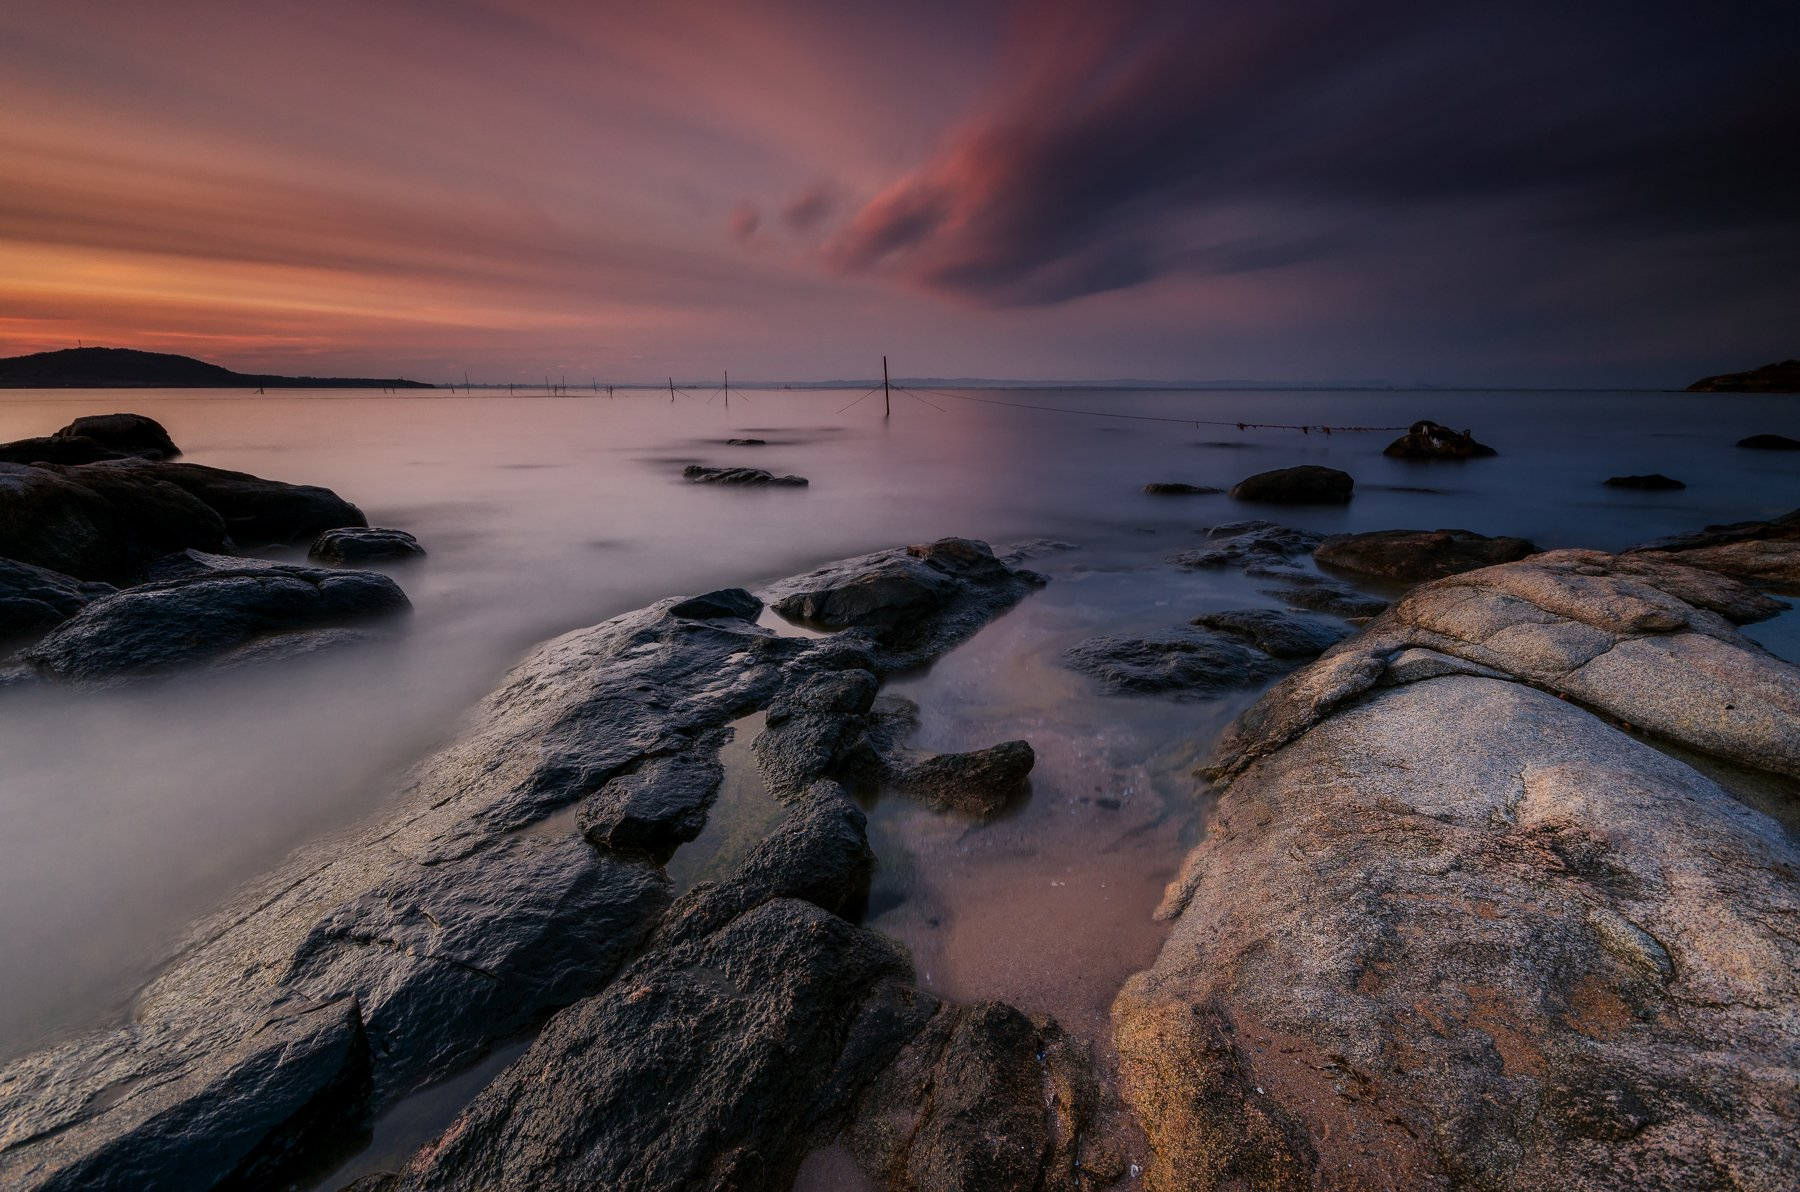 bulgaria, clouds, fineart, golden hour, landscape, lee filters, long exposure, nikon, rocks, sea, seascape, sky, sun, water, waves, Иван Димов